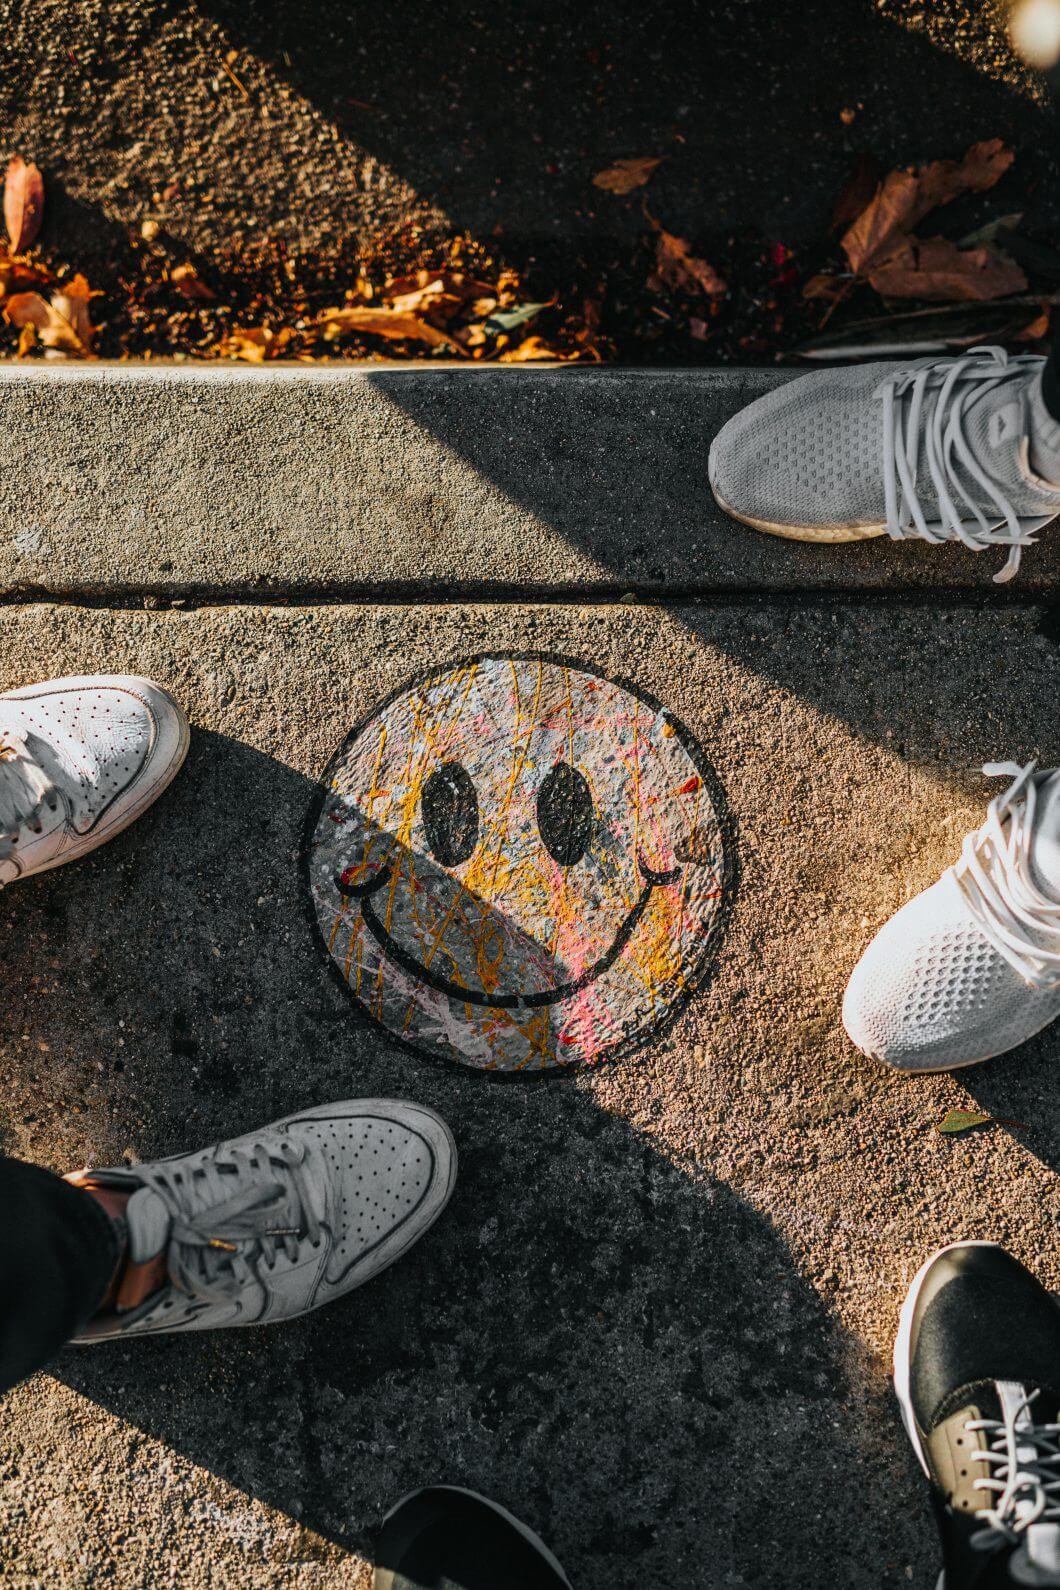 Crayon drawing of a positive, smiley face in playground.